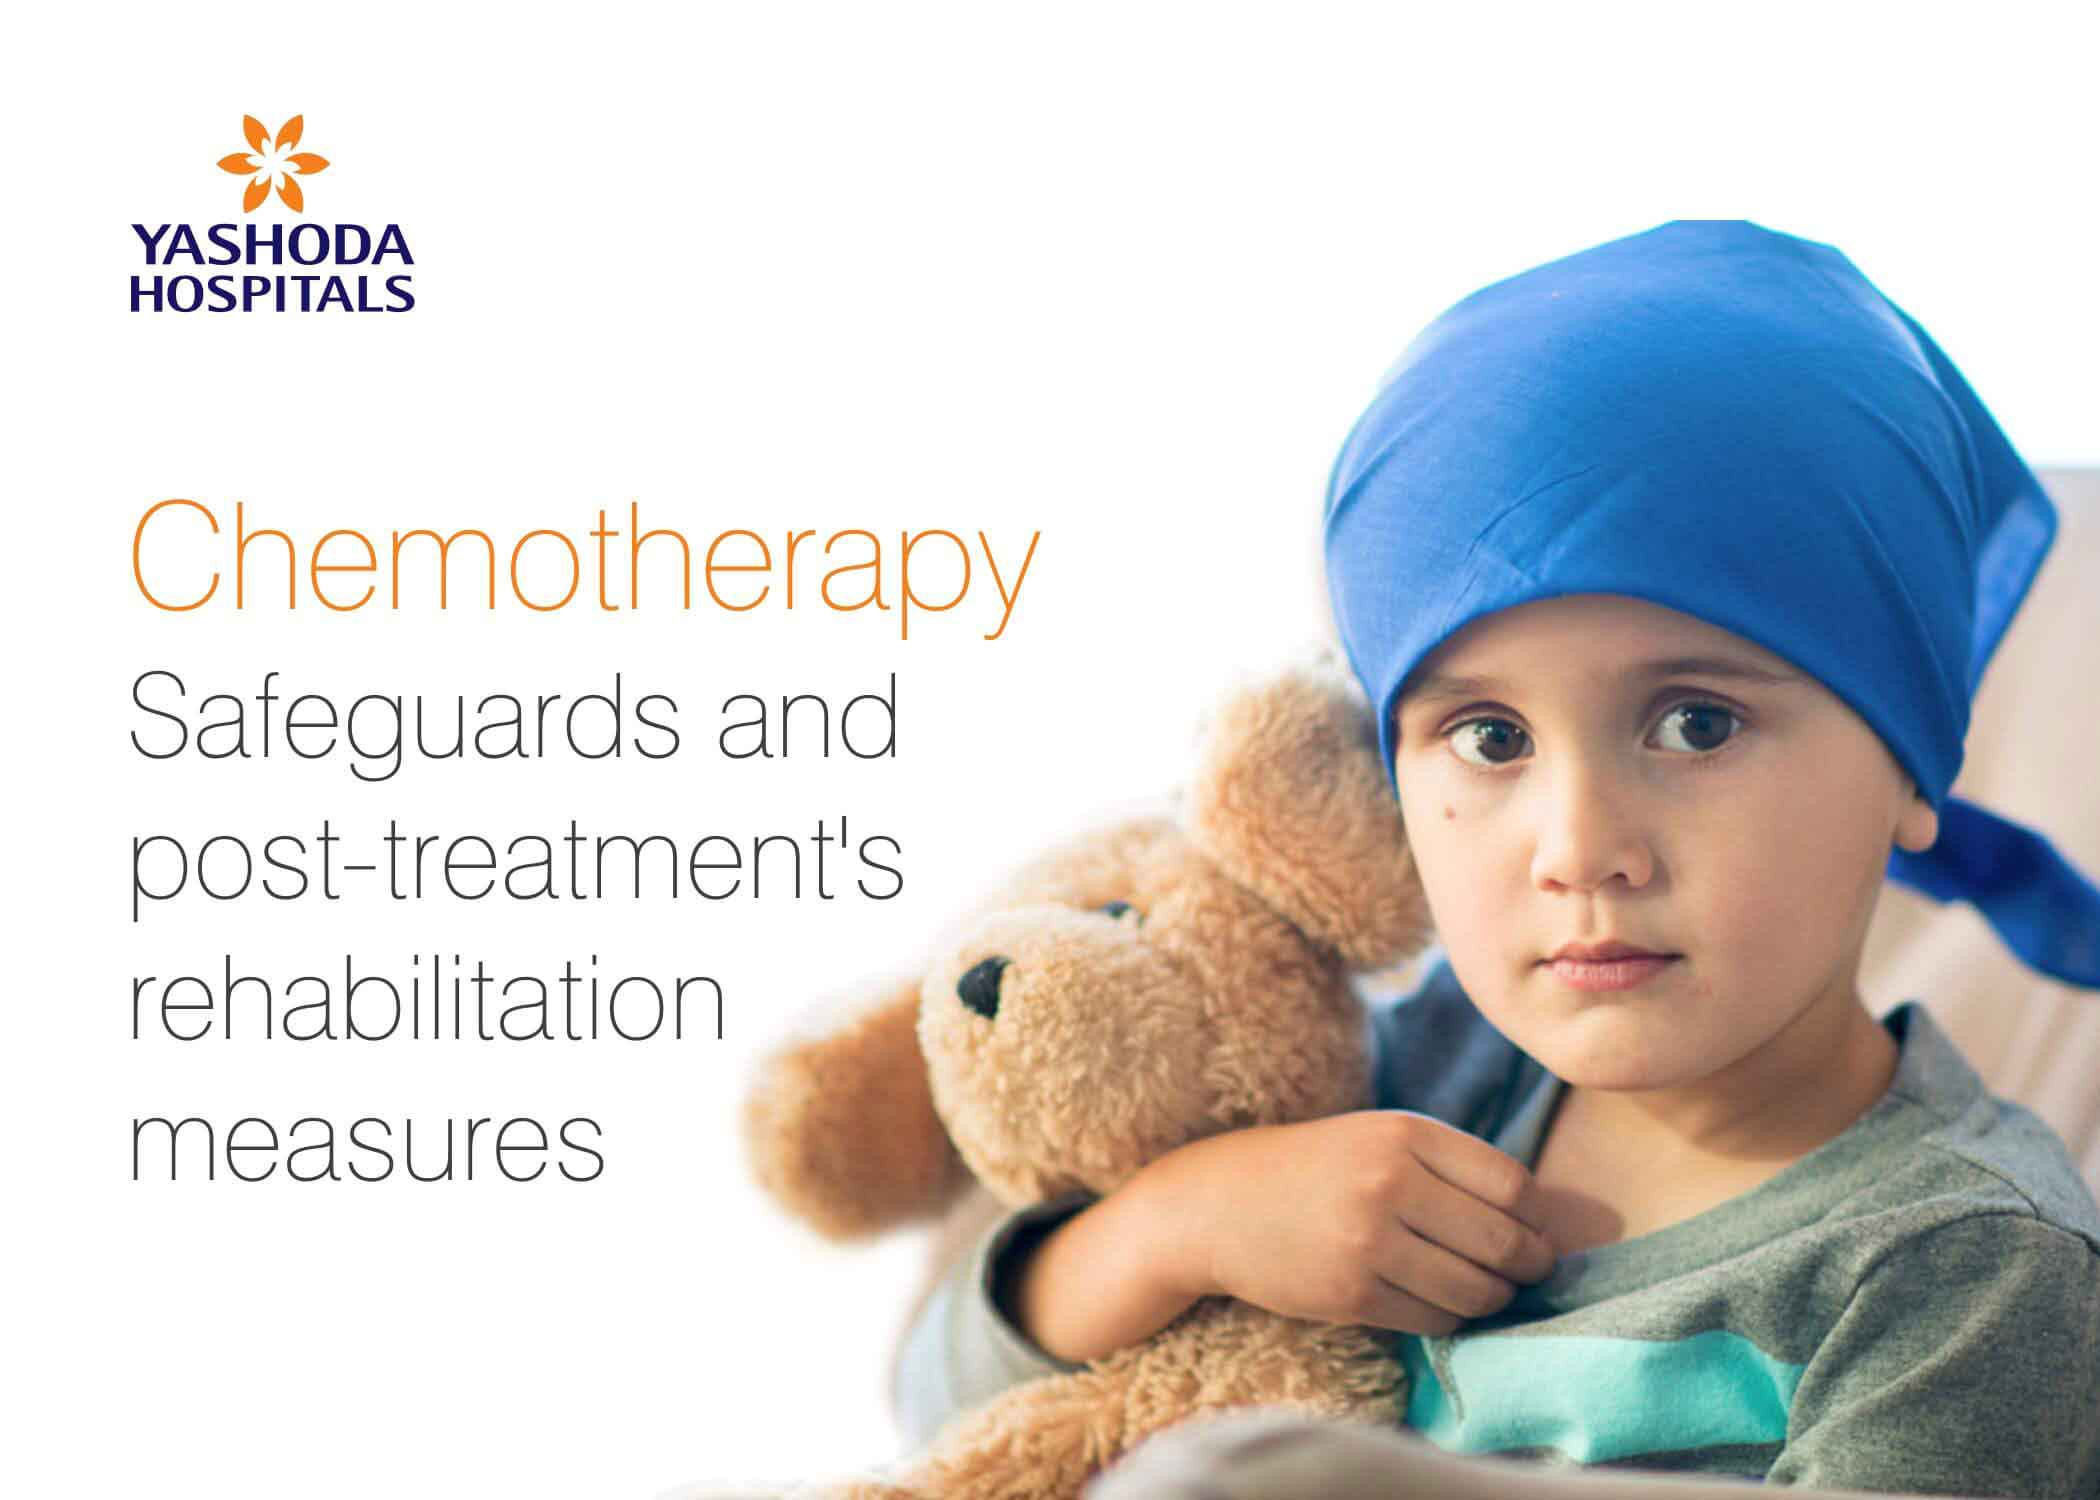 Chemotherapy Safeguards- Rehabilitation